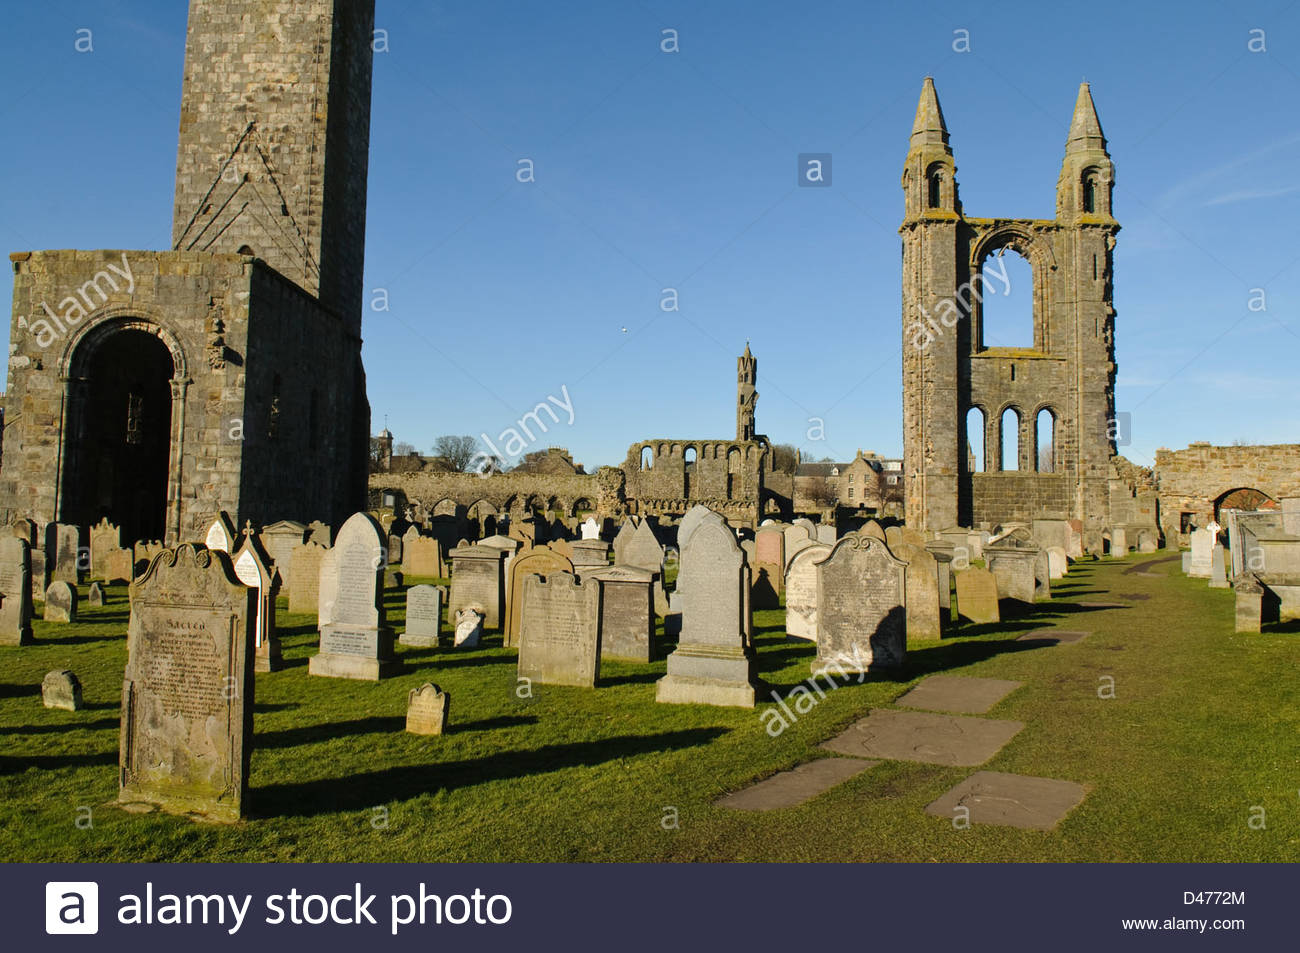 St. Rule's Tower Fife and Angus, St. Rules Tower and the East Tower of St. Andrews Cathedral, St ...